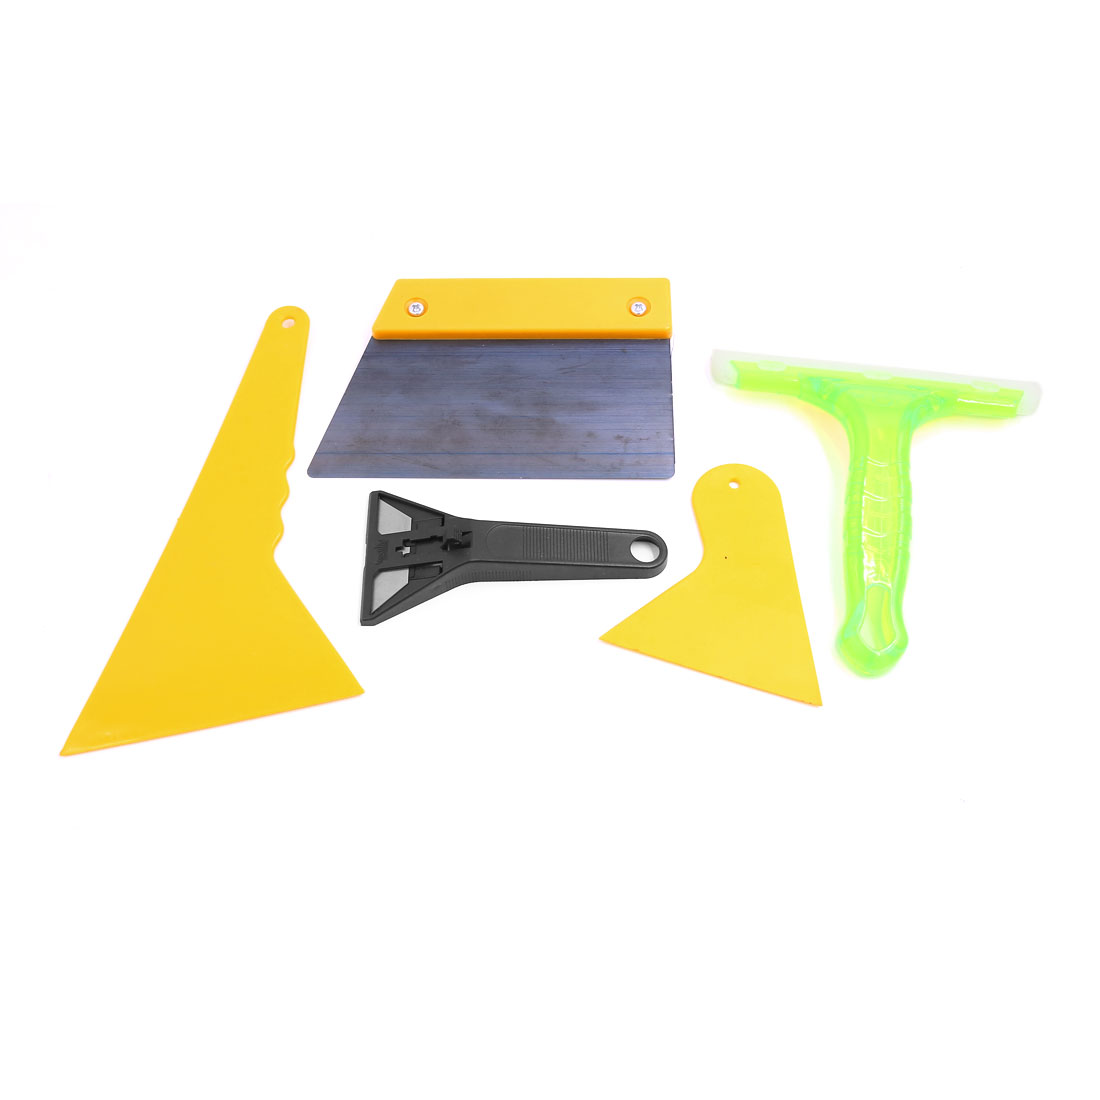 5PCS Car Truck Window Tinting Tint Film Cleaning Scraper Tools Kit